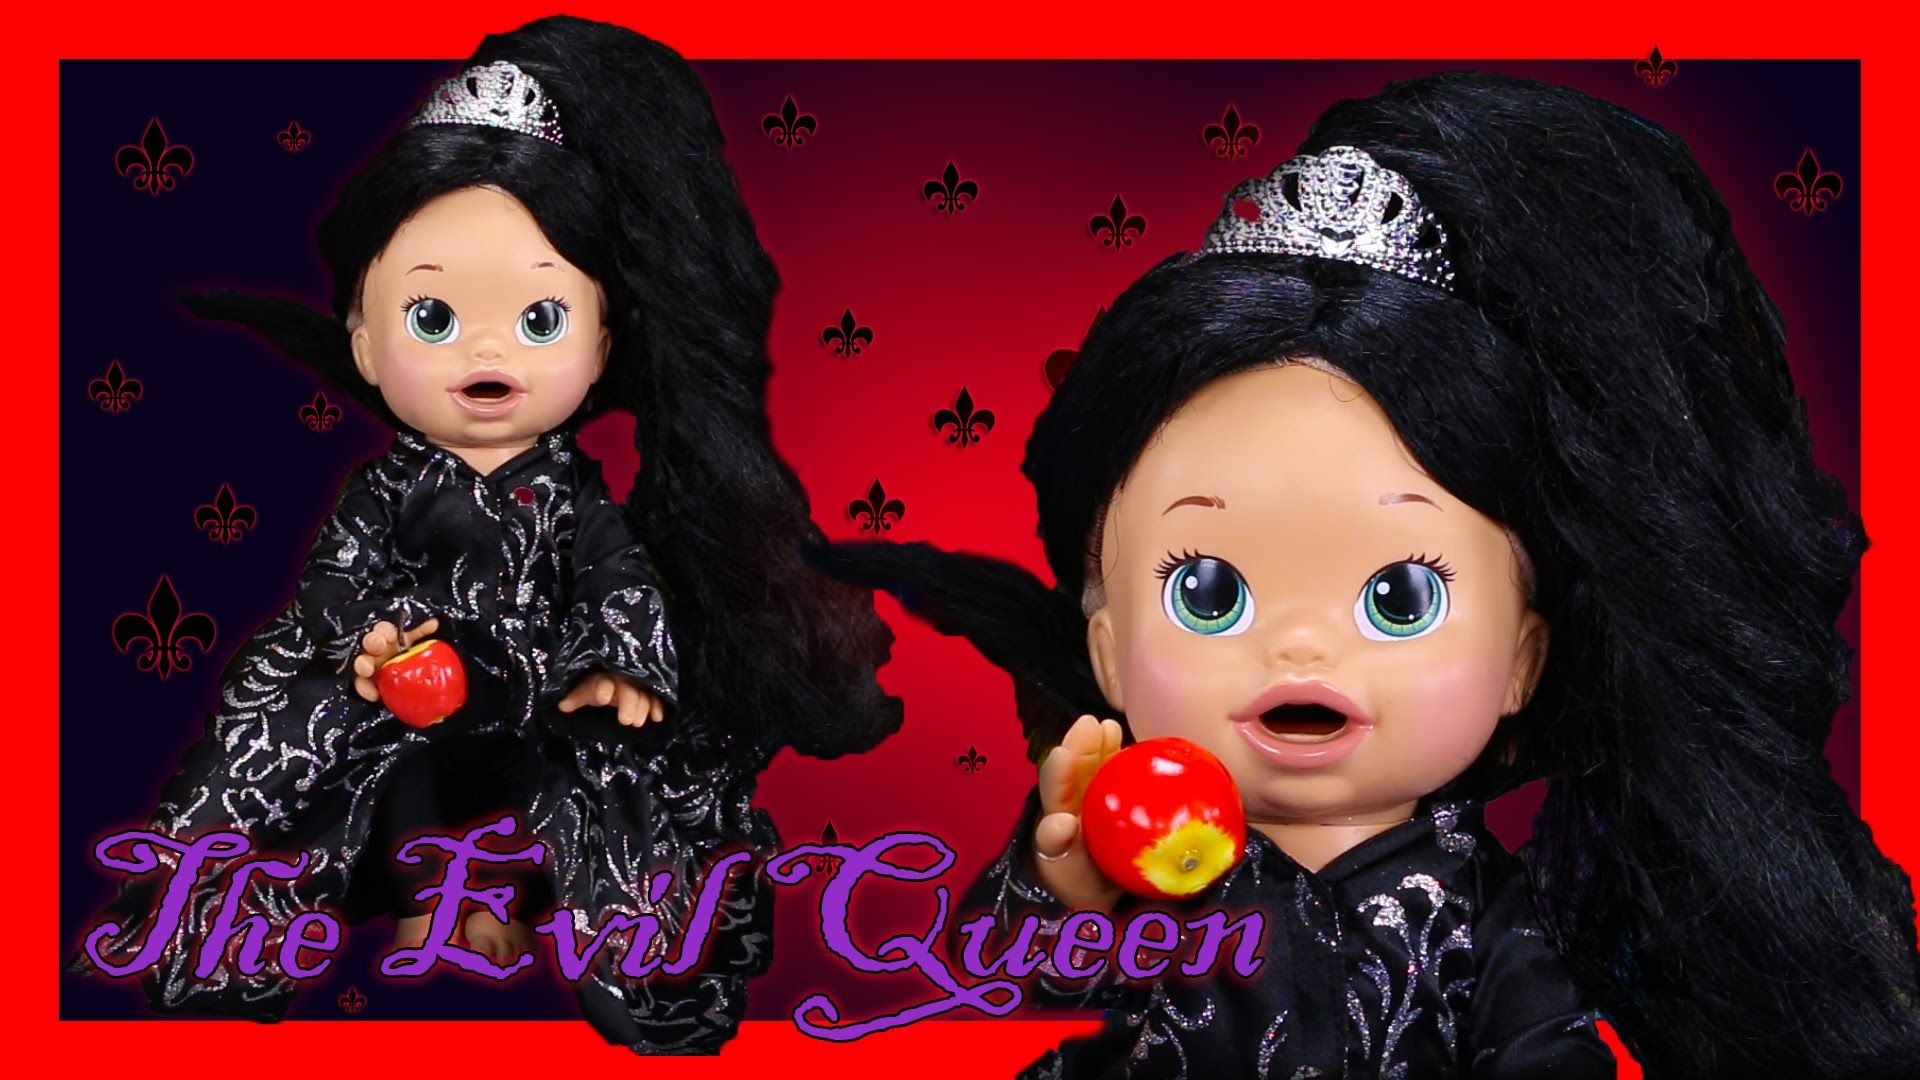 Evil Queen Once Upon A Time Custom Baby Alive Eats Play Doh Poops Surprise Blind Bags Baby Alive Custom Baby Blind Bags